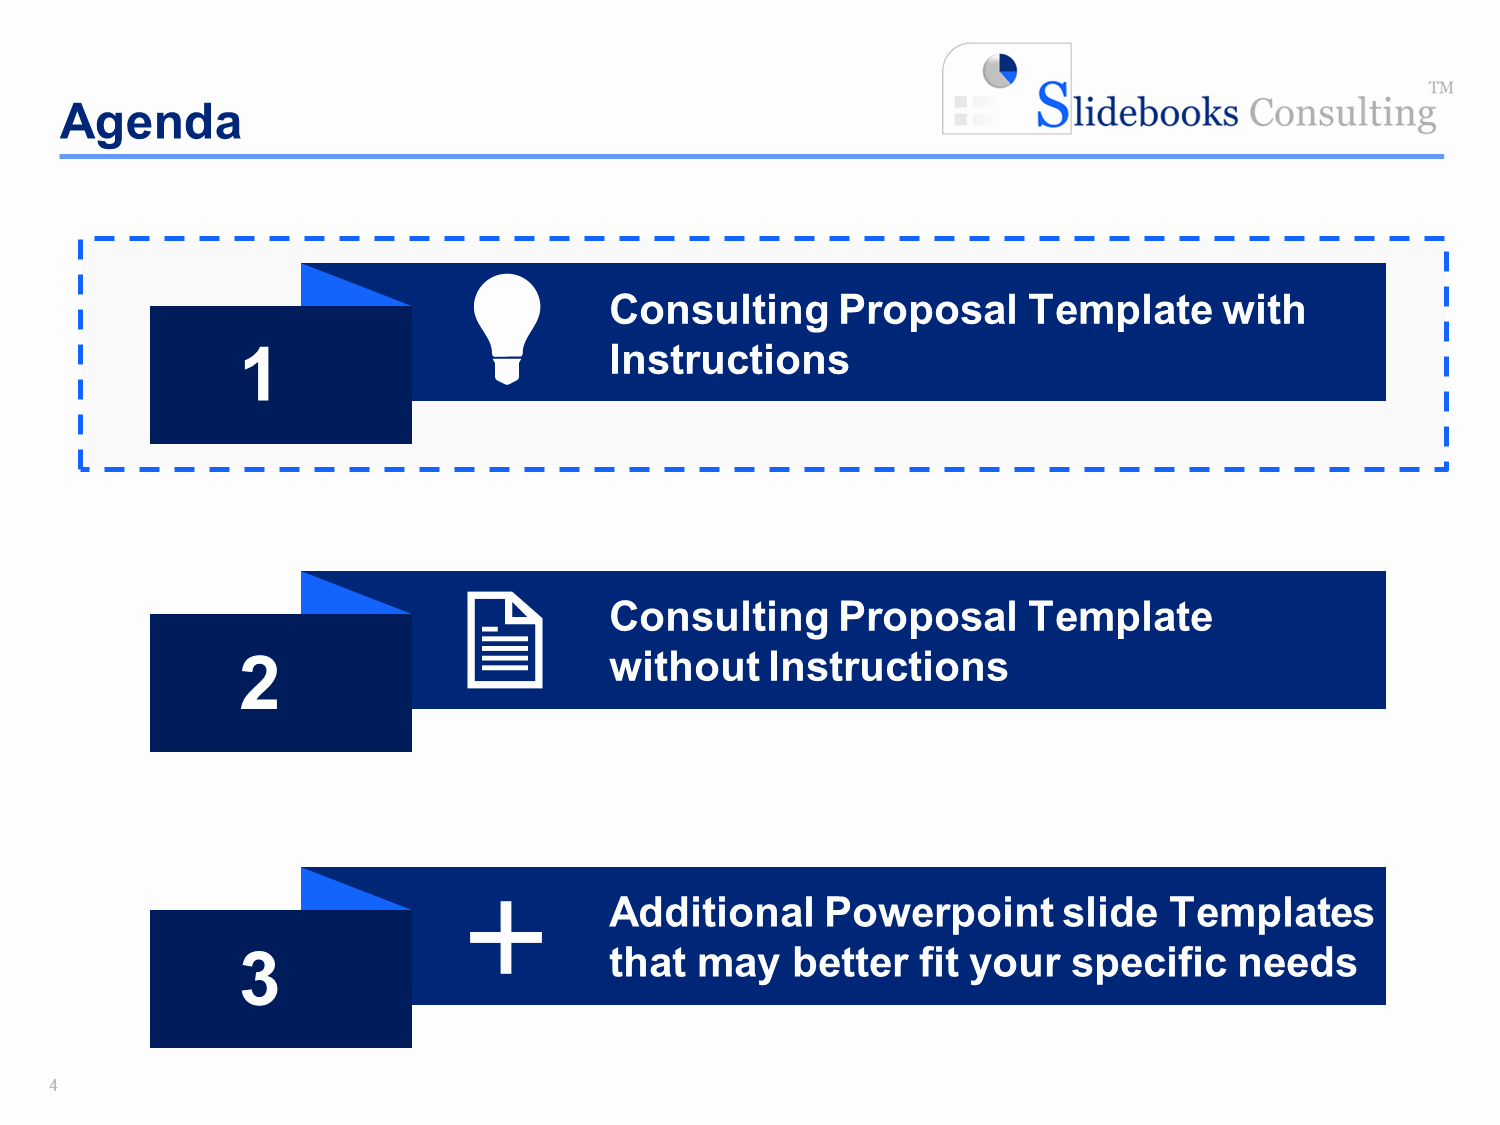 Consulting Proposal Template Mckinsey Awesome Consulting Proposal Template In Powerpoint